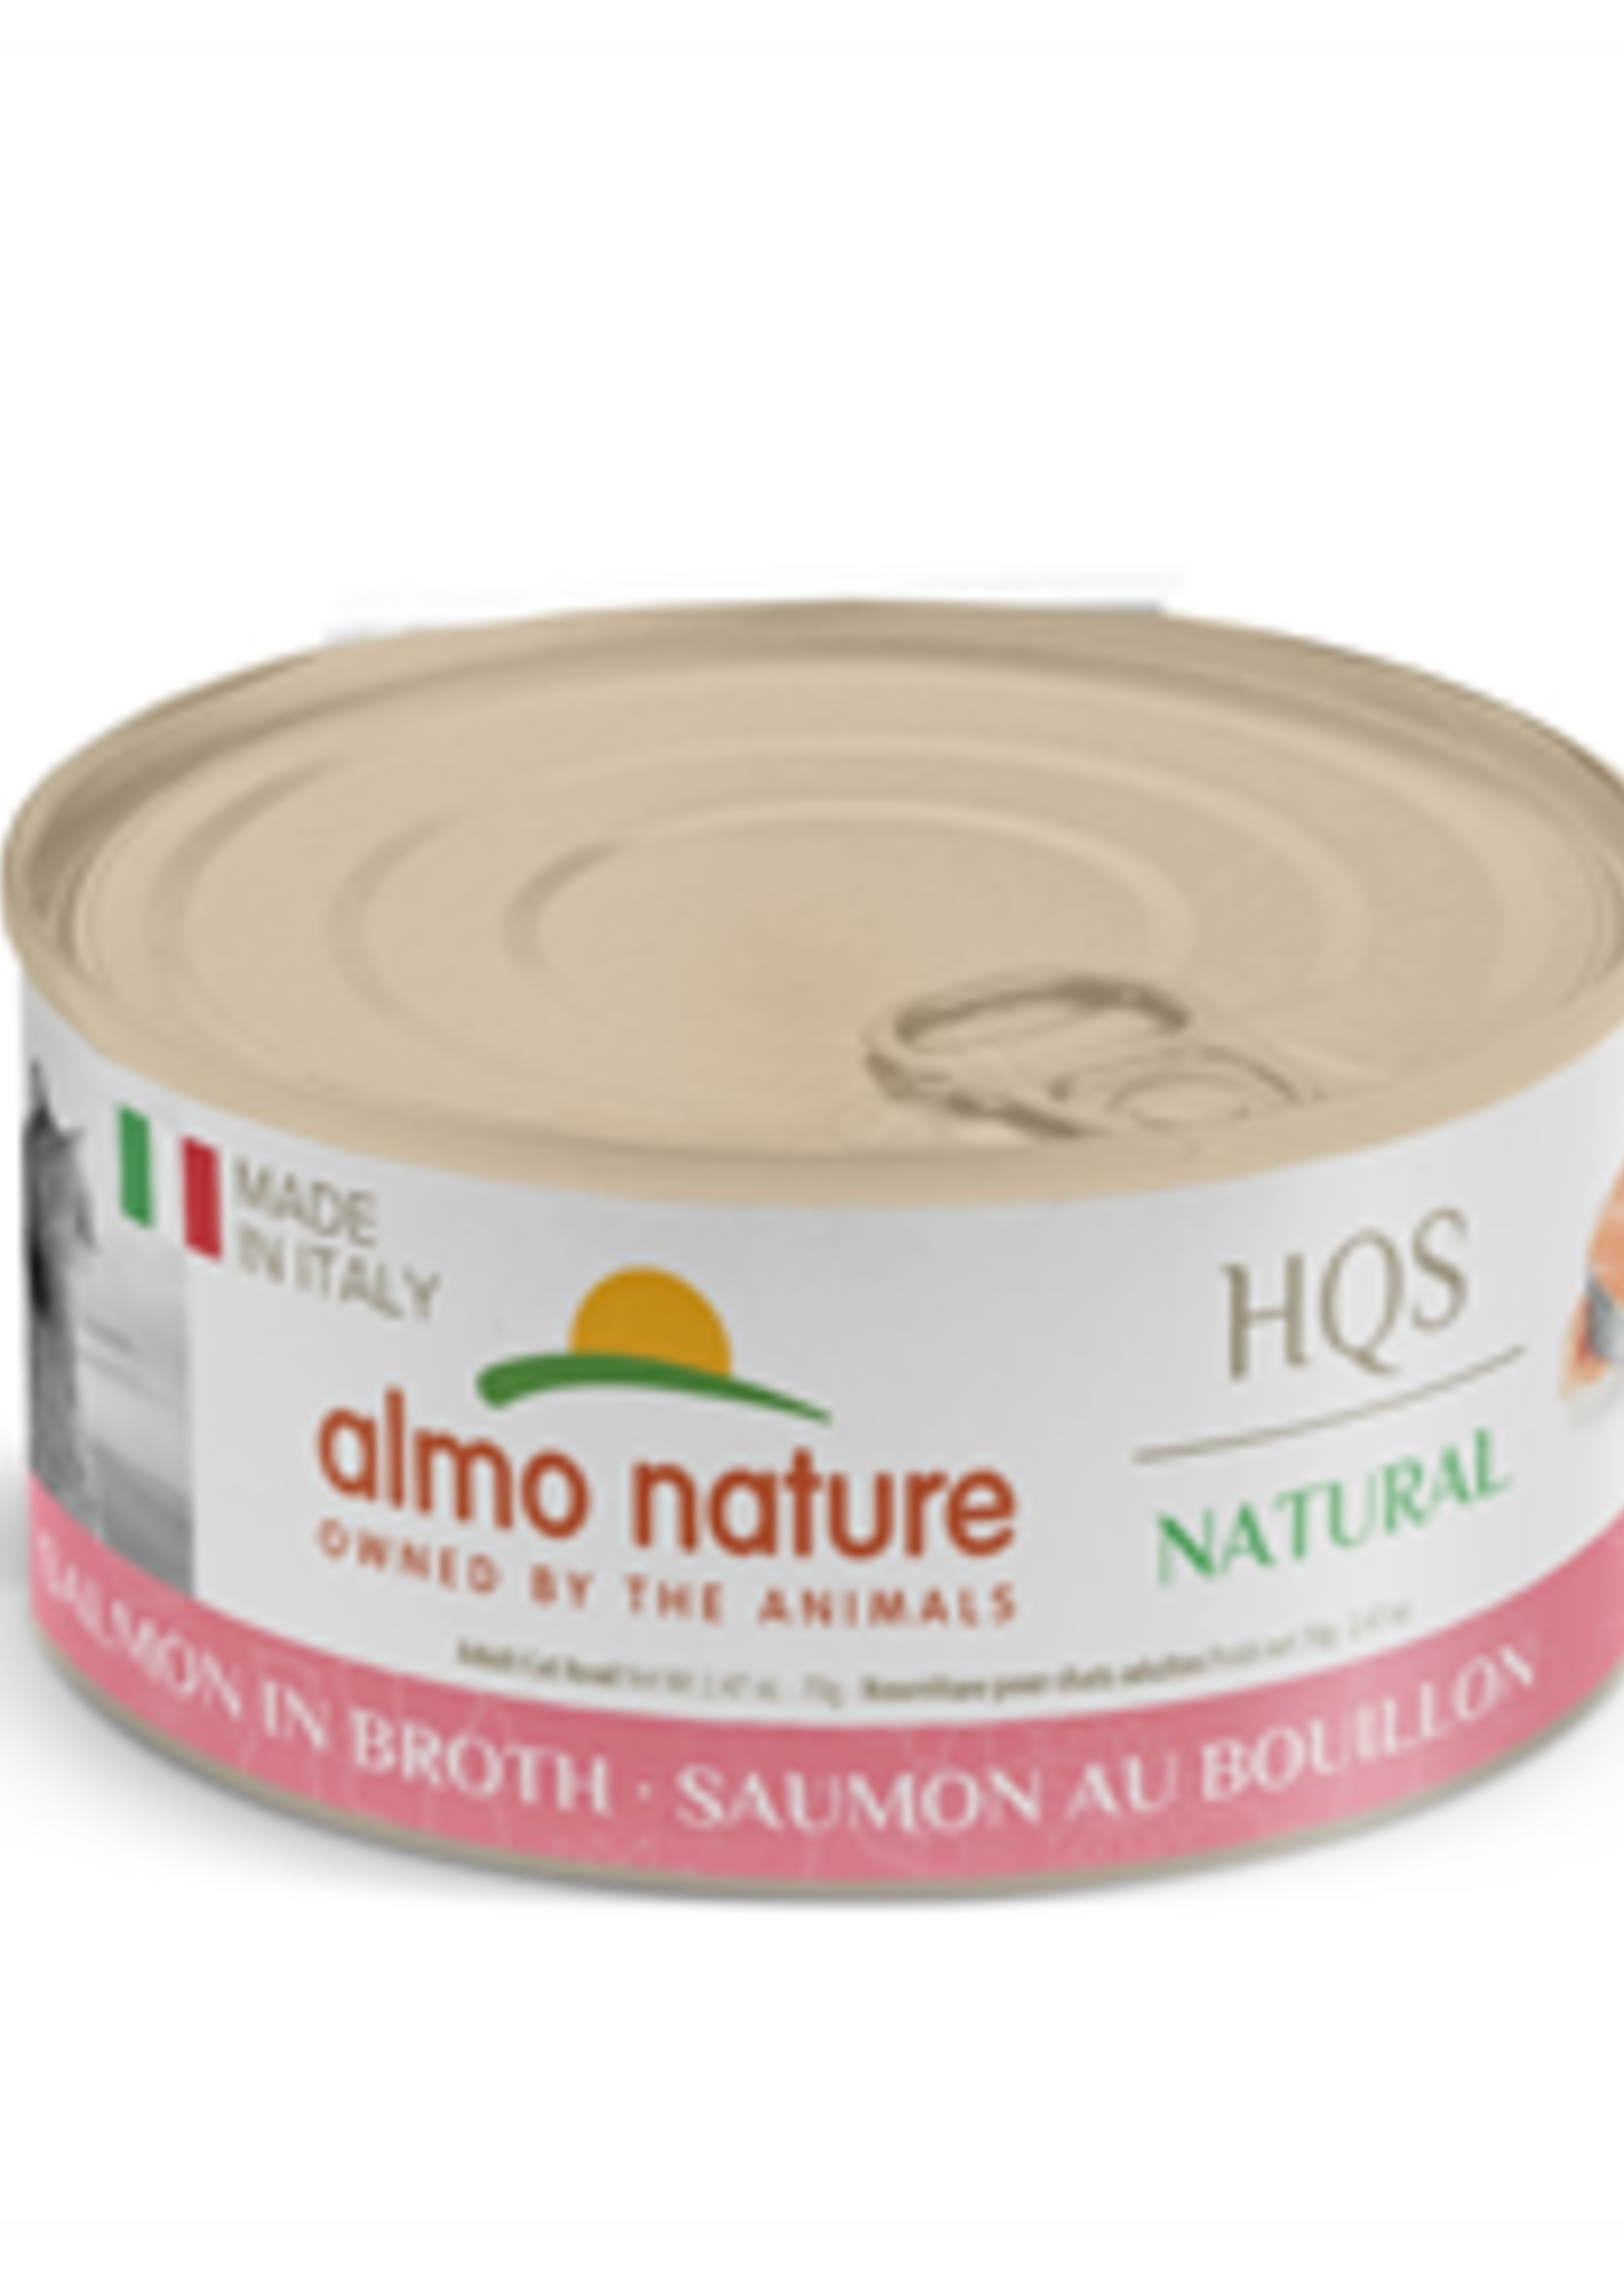 Almo Nature© Almo Nature HQS Made in Italy Salmon in Broth 70g